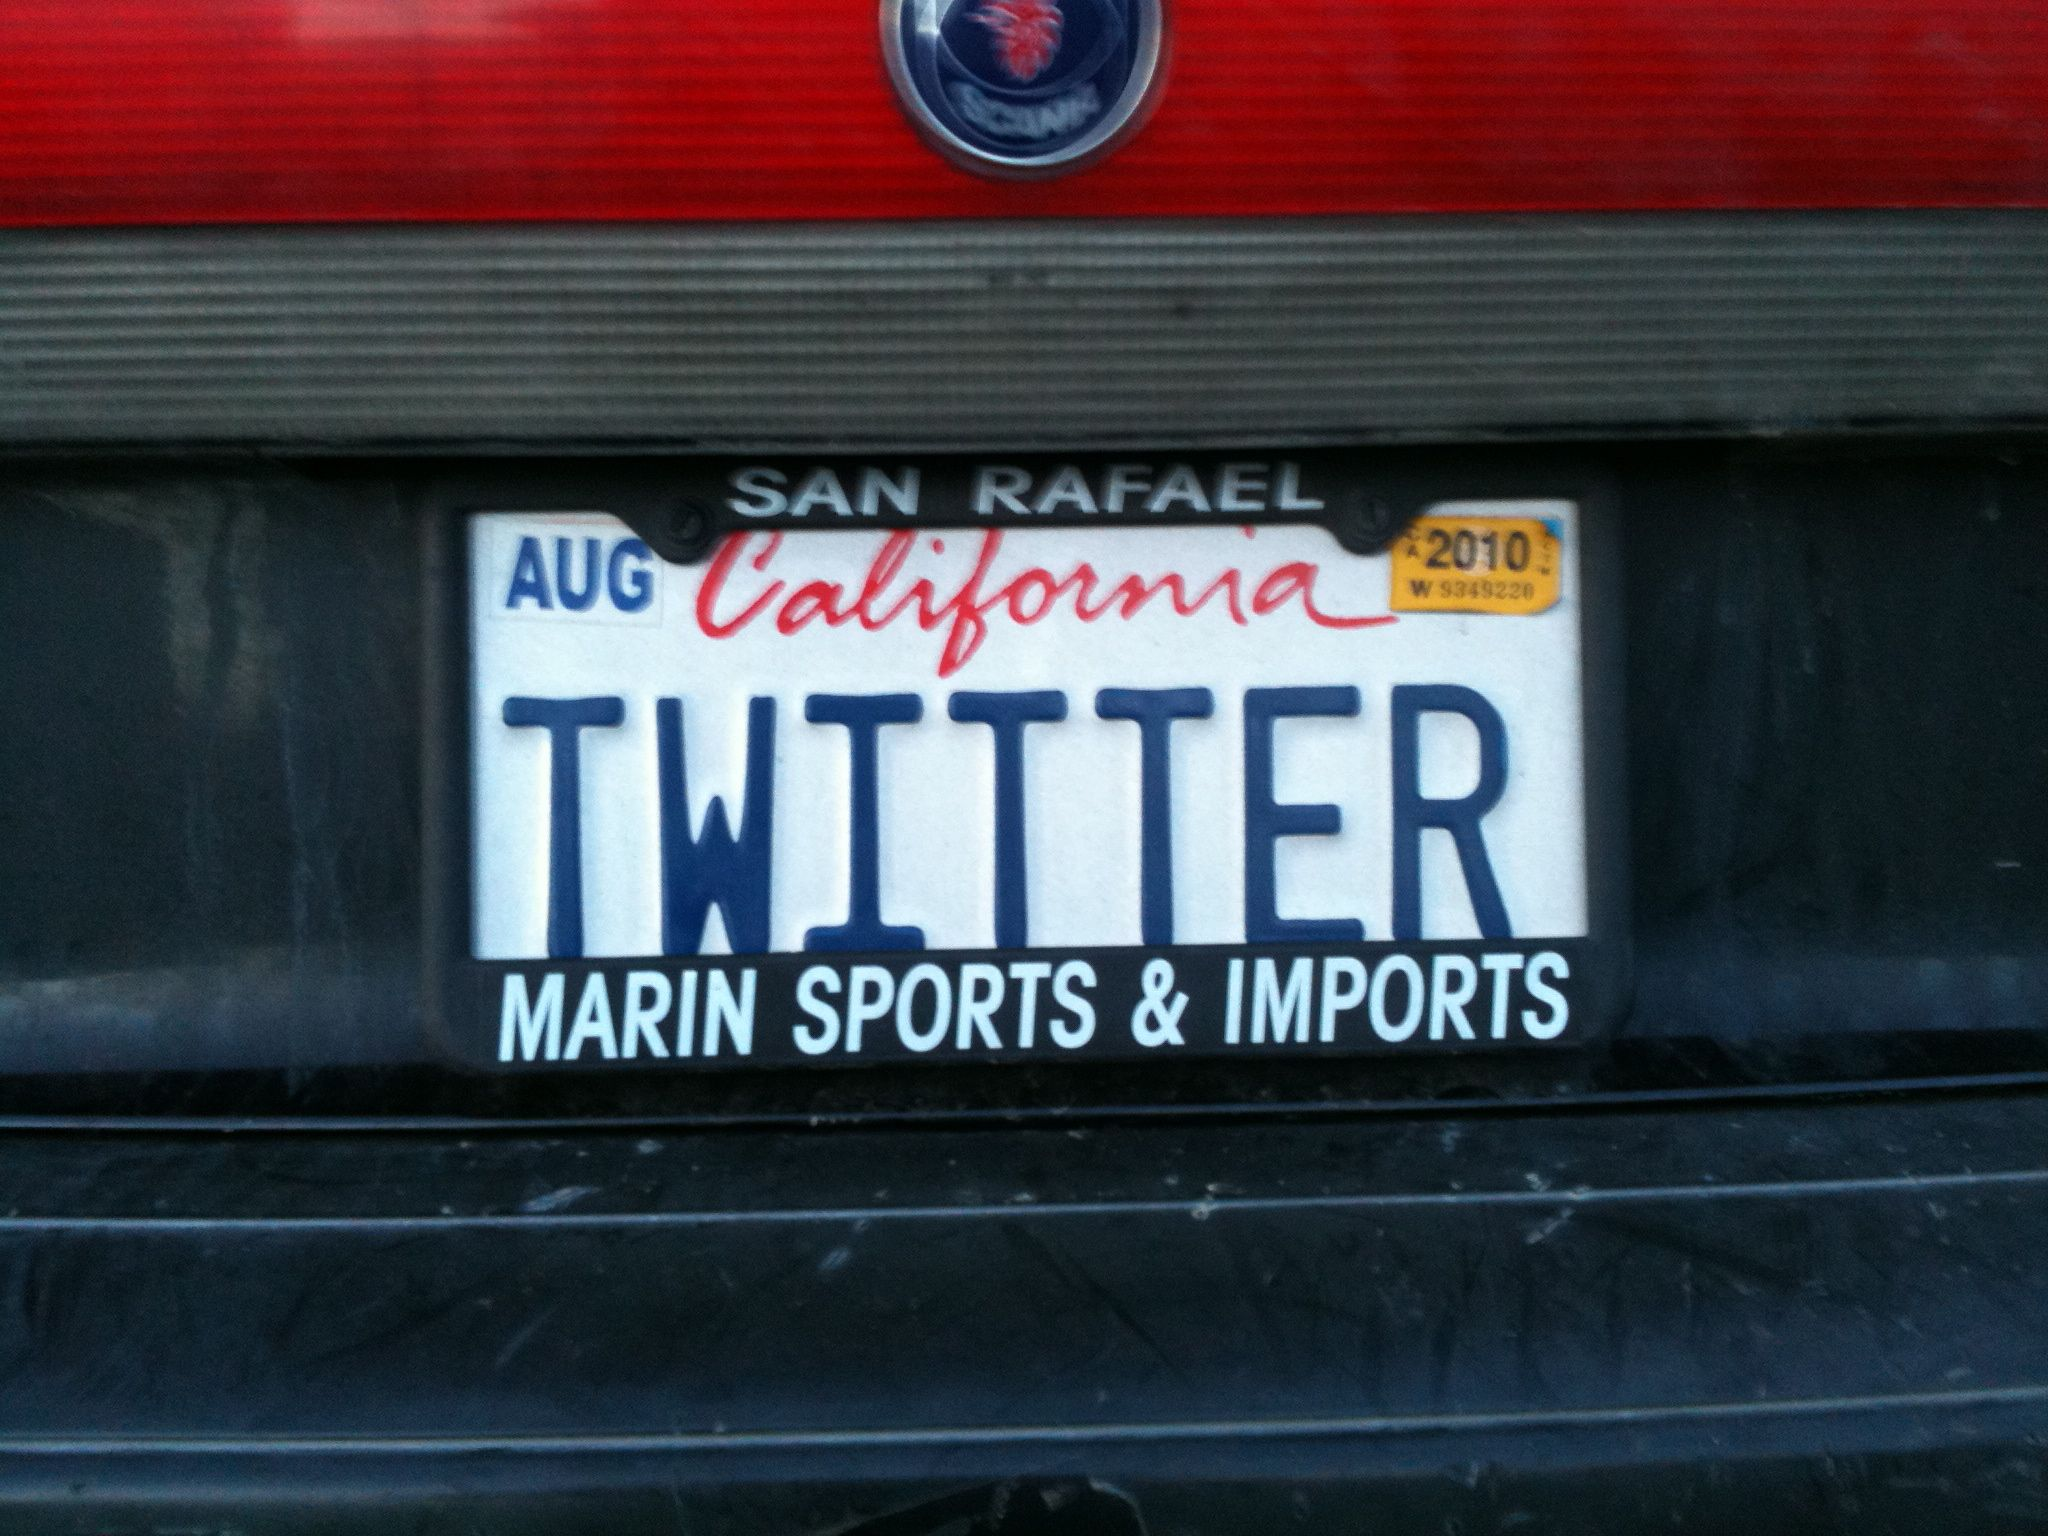 Apropos Of Nothing TWITTER License Plate Only Seven Characters